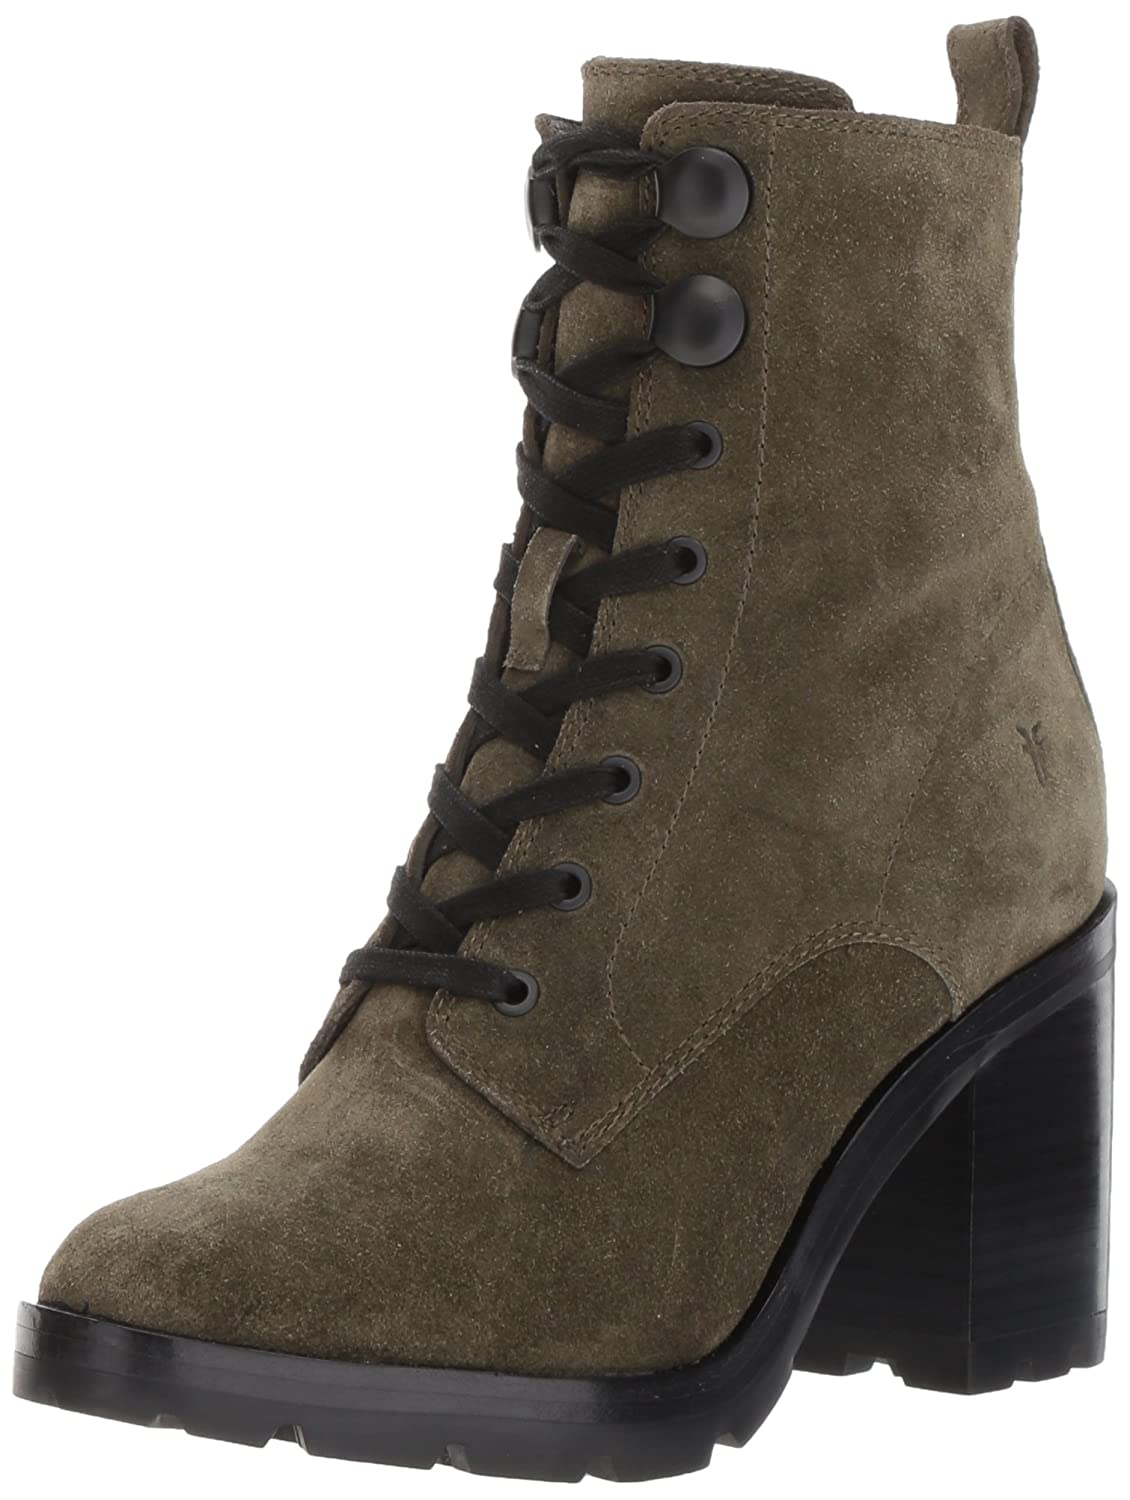 FRYE Women's Myra Lug Combat Boot B01N4H55ZW 5.5 M US|Forest Soft Oiled Suede